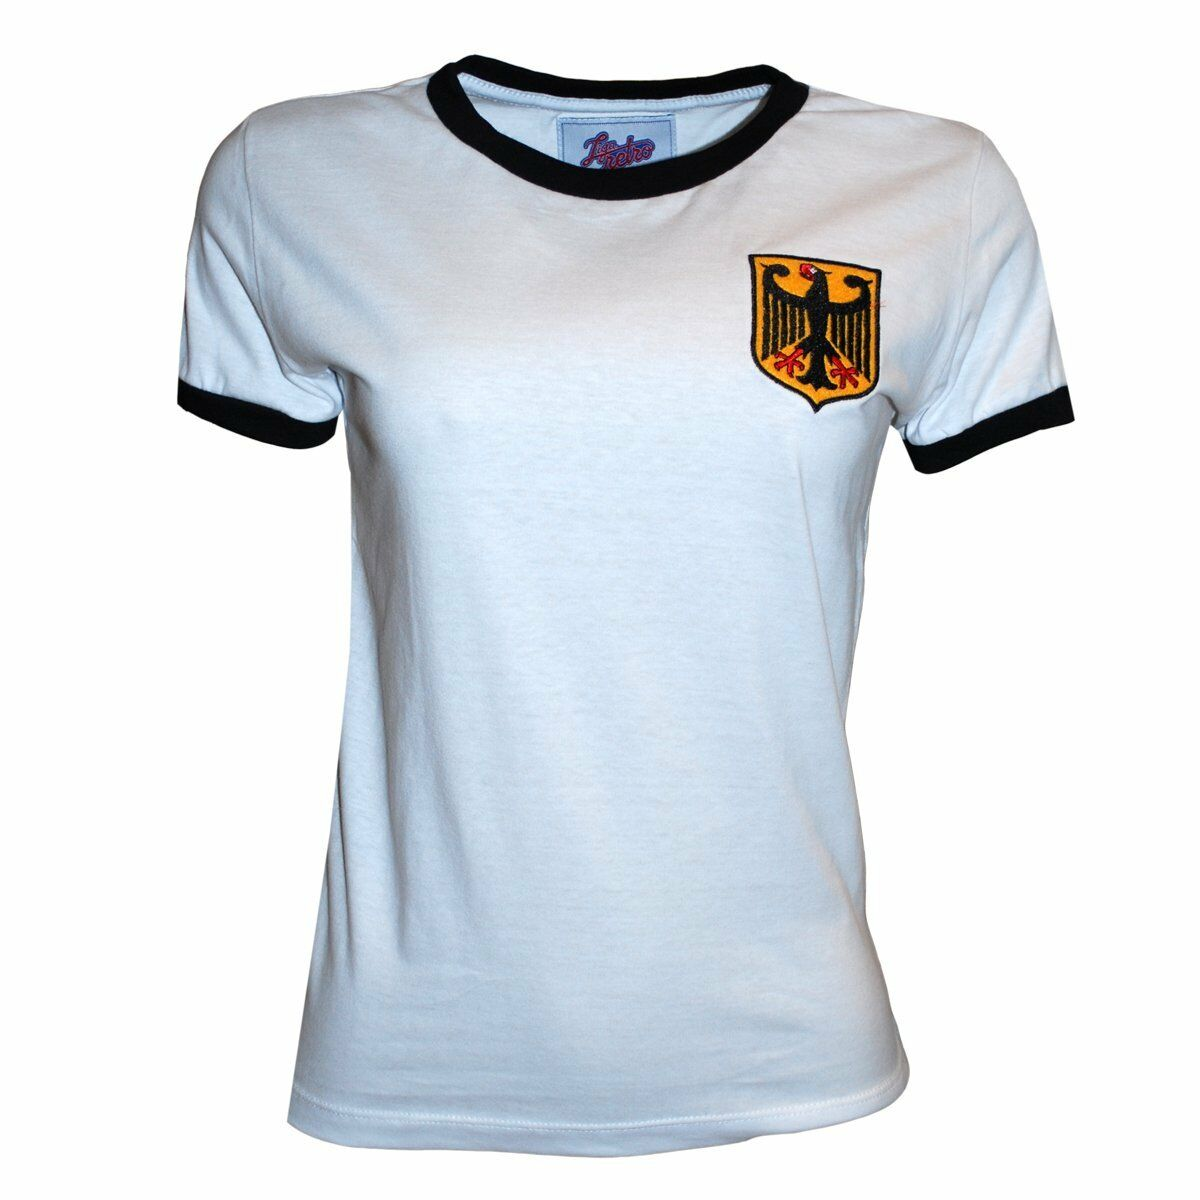 Germany 1970 Women Shirt Vintage Soccer Football Jersey